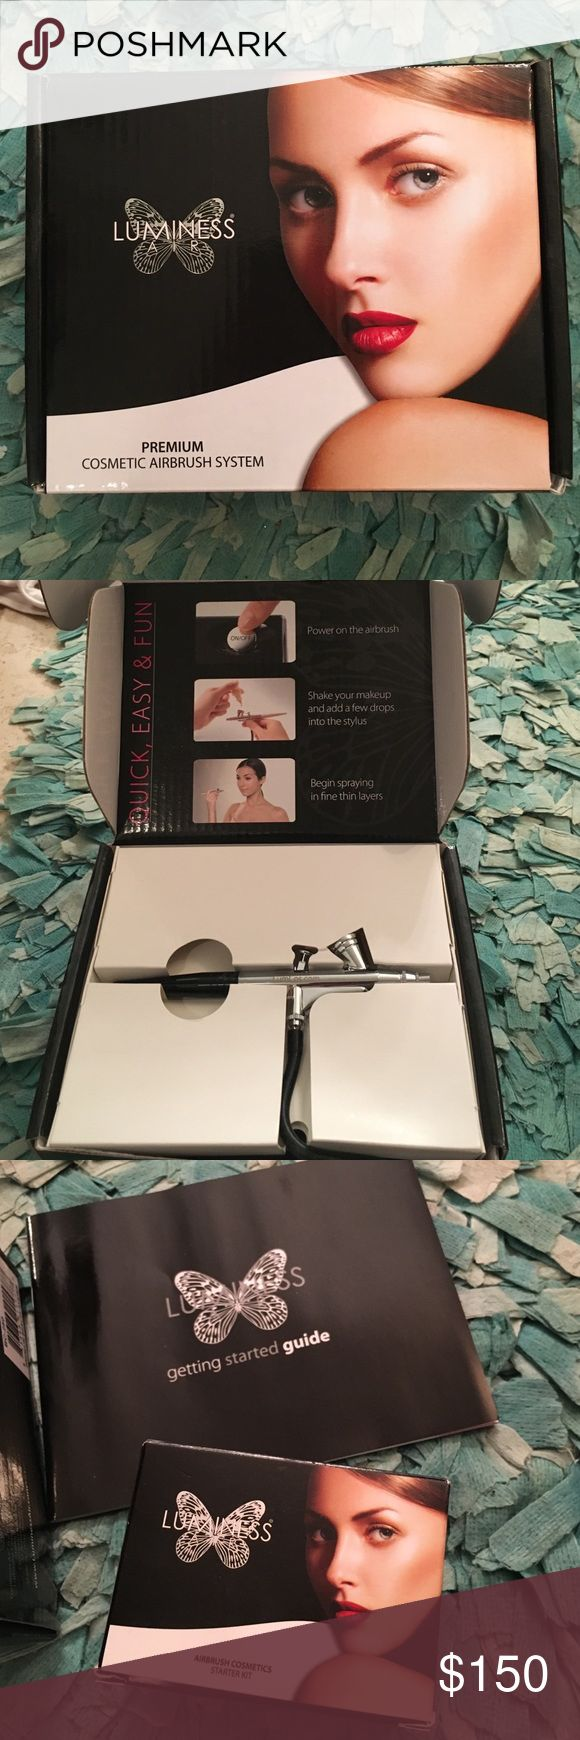 Brand new Luminess airbrush kit.  Never used Brand new, never used, perfect condition luminess air brushing machine. Makes your skin look totally amazing! Includes DVD step-by-step instructions, includes a starter kit with foundation colors and primers, blush, Brightening glow, moisturizer and bronzer luminess Makeup